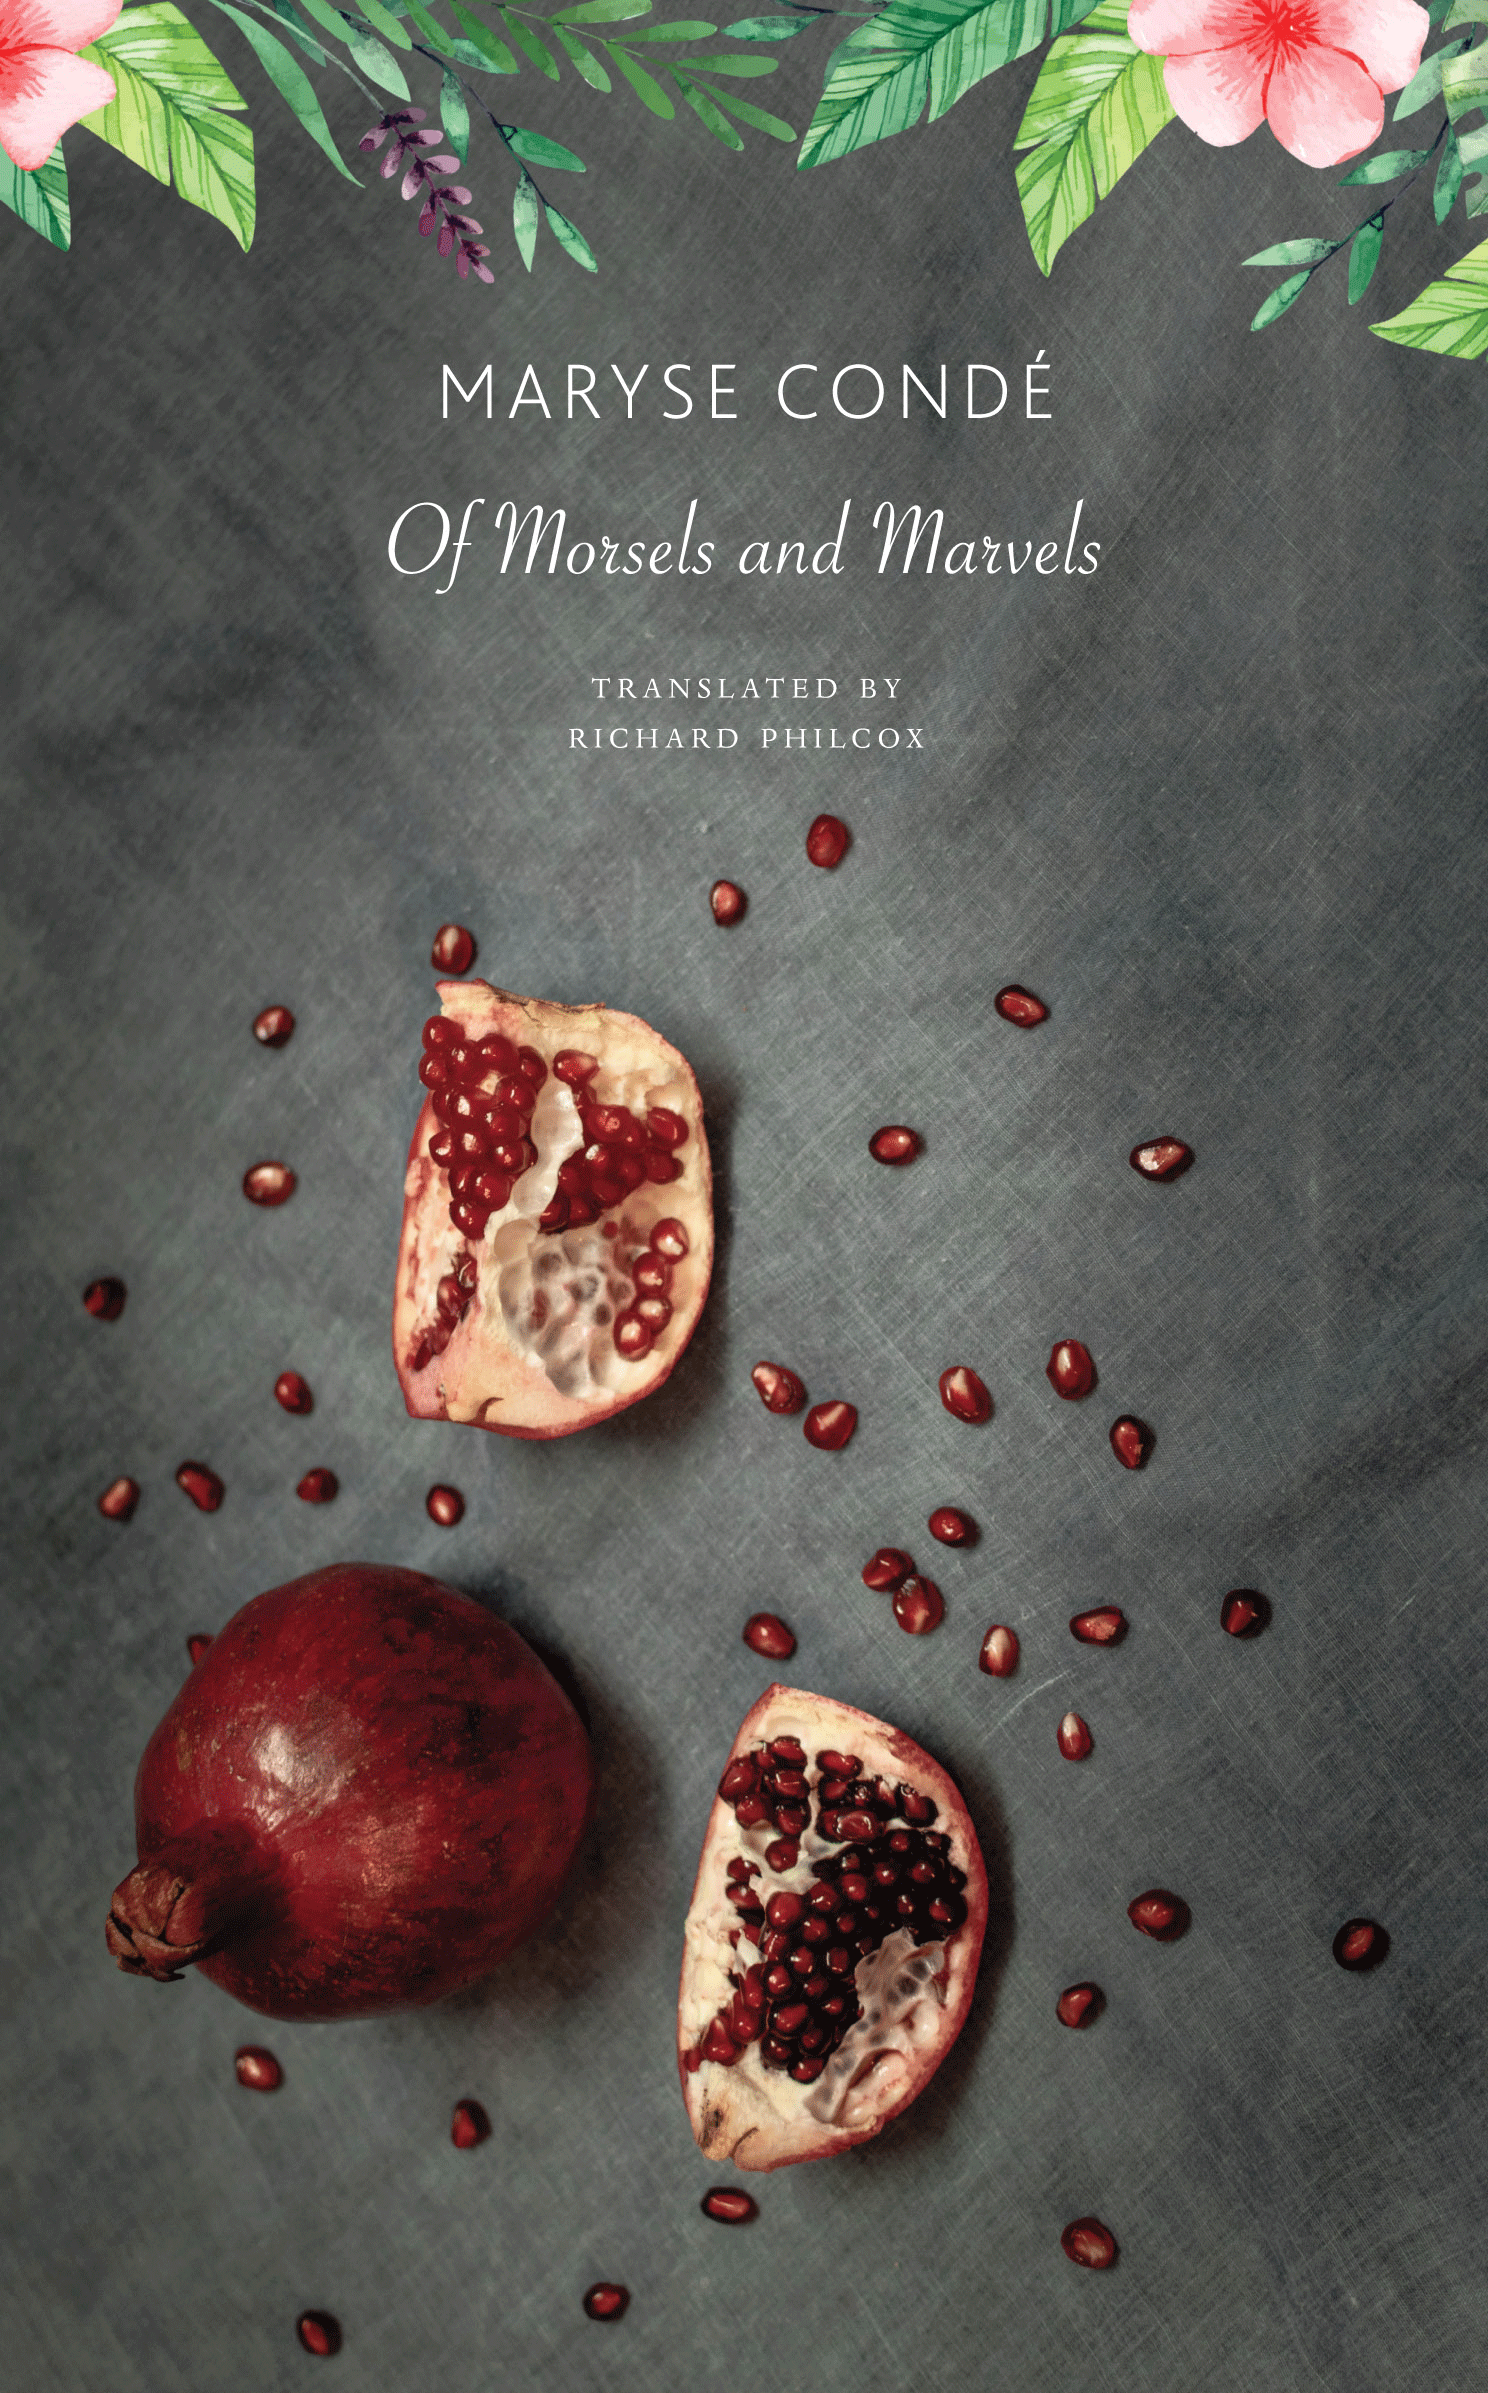 Of Morsels and Marvels by Maryse Condé |  Seagull Books